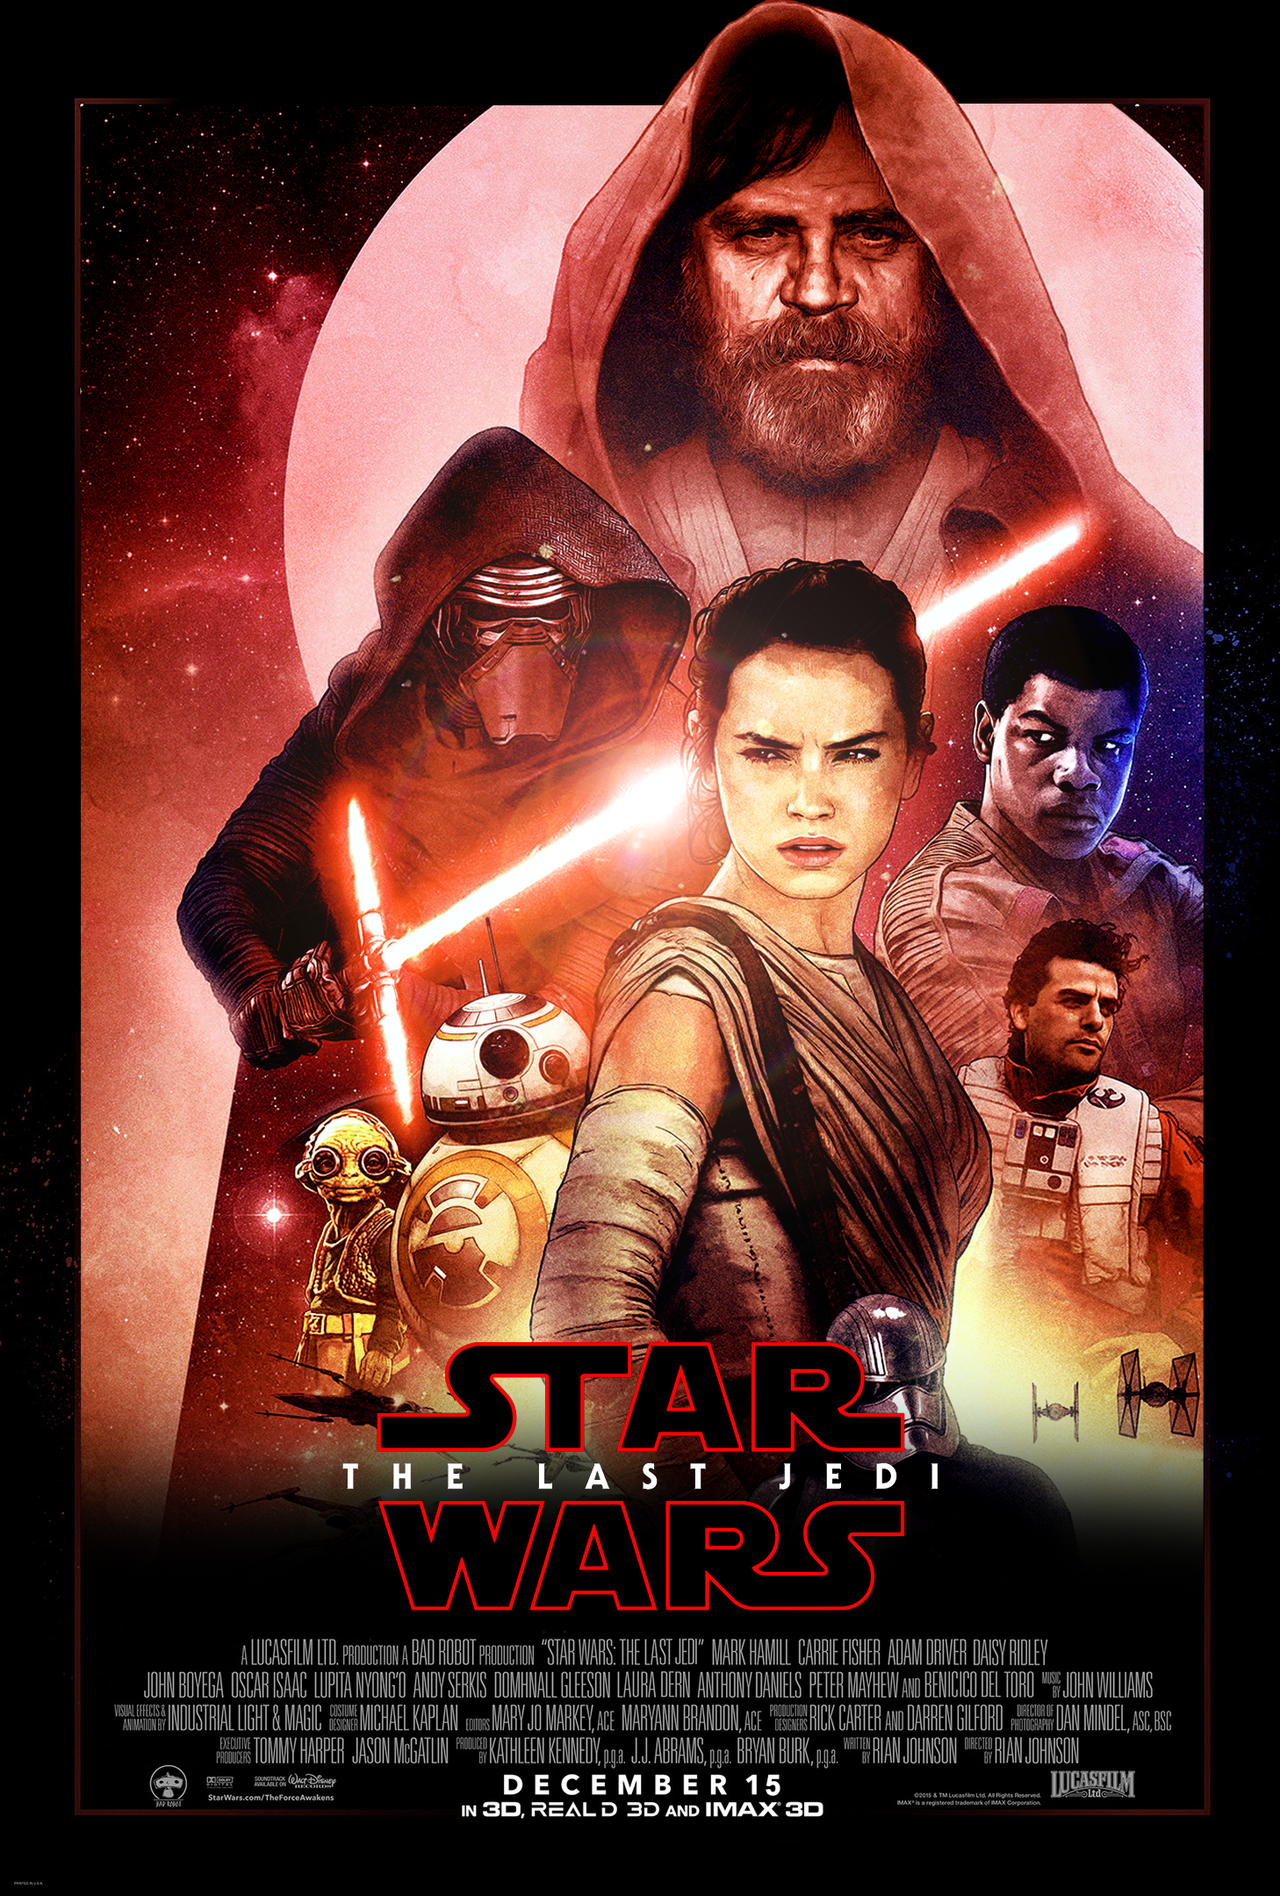 Star Wars The Last Jedi Poster Hd Posted By Zoey Simpson